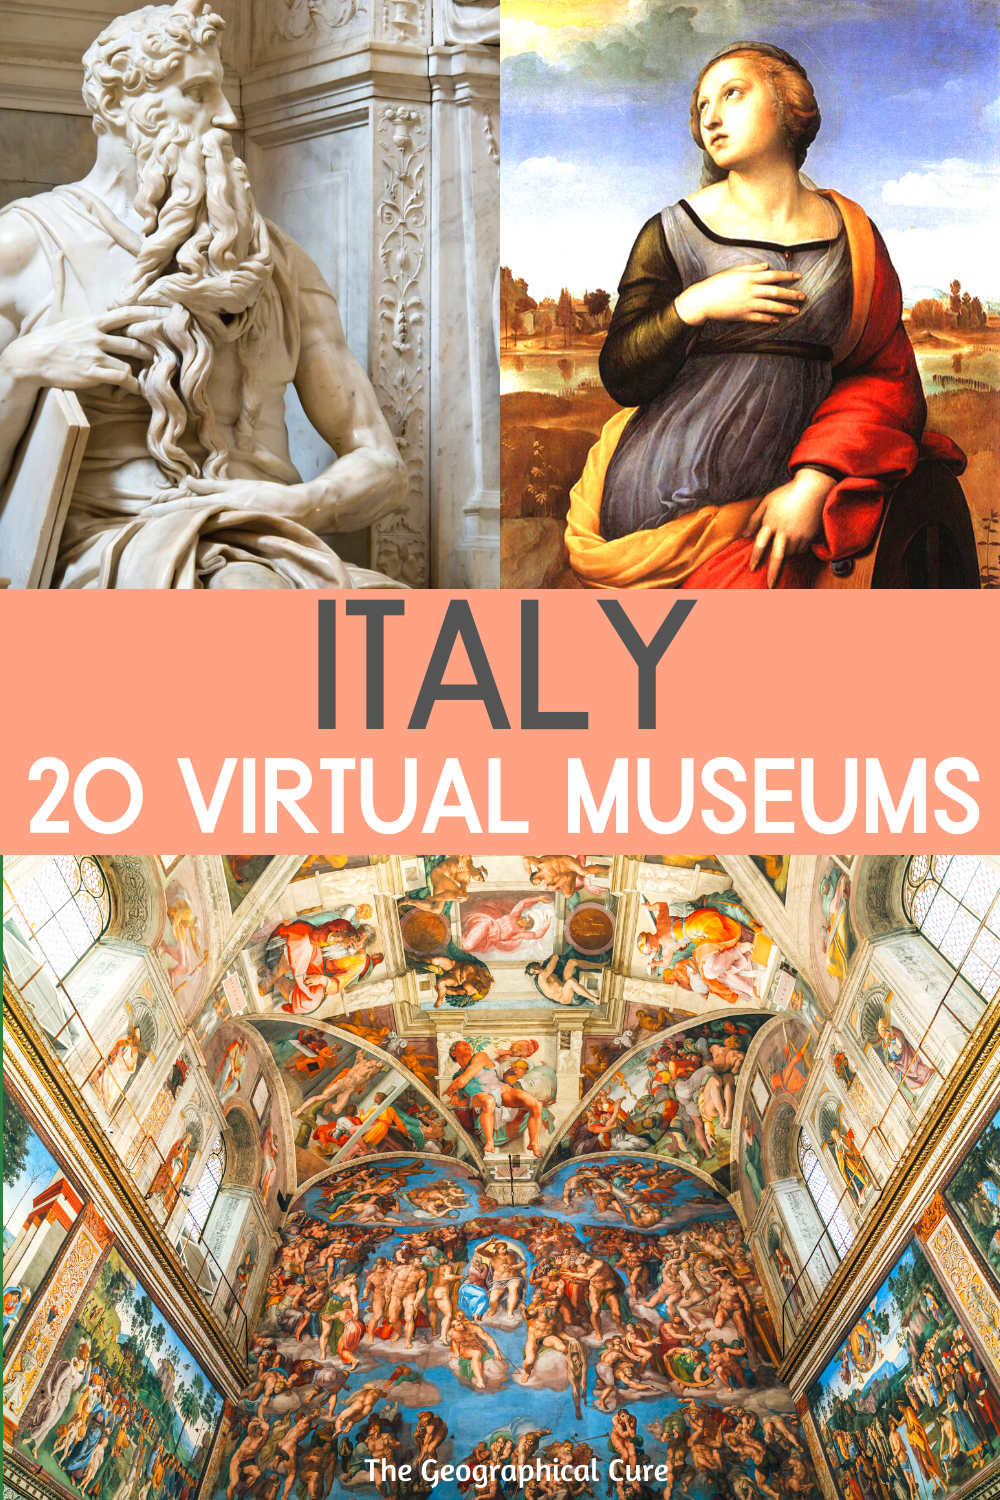 20 Amazing Virtual Museums In Italy To Enjoy From